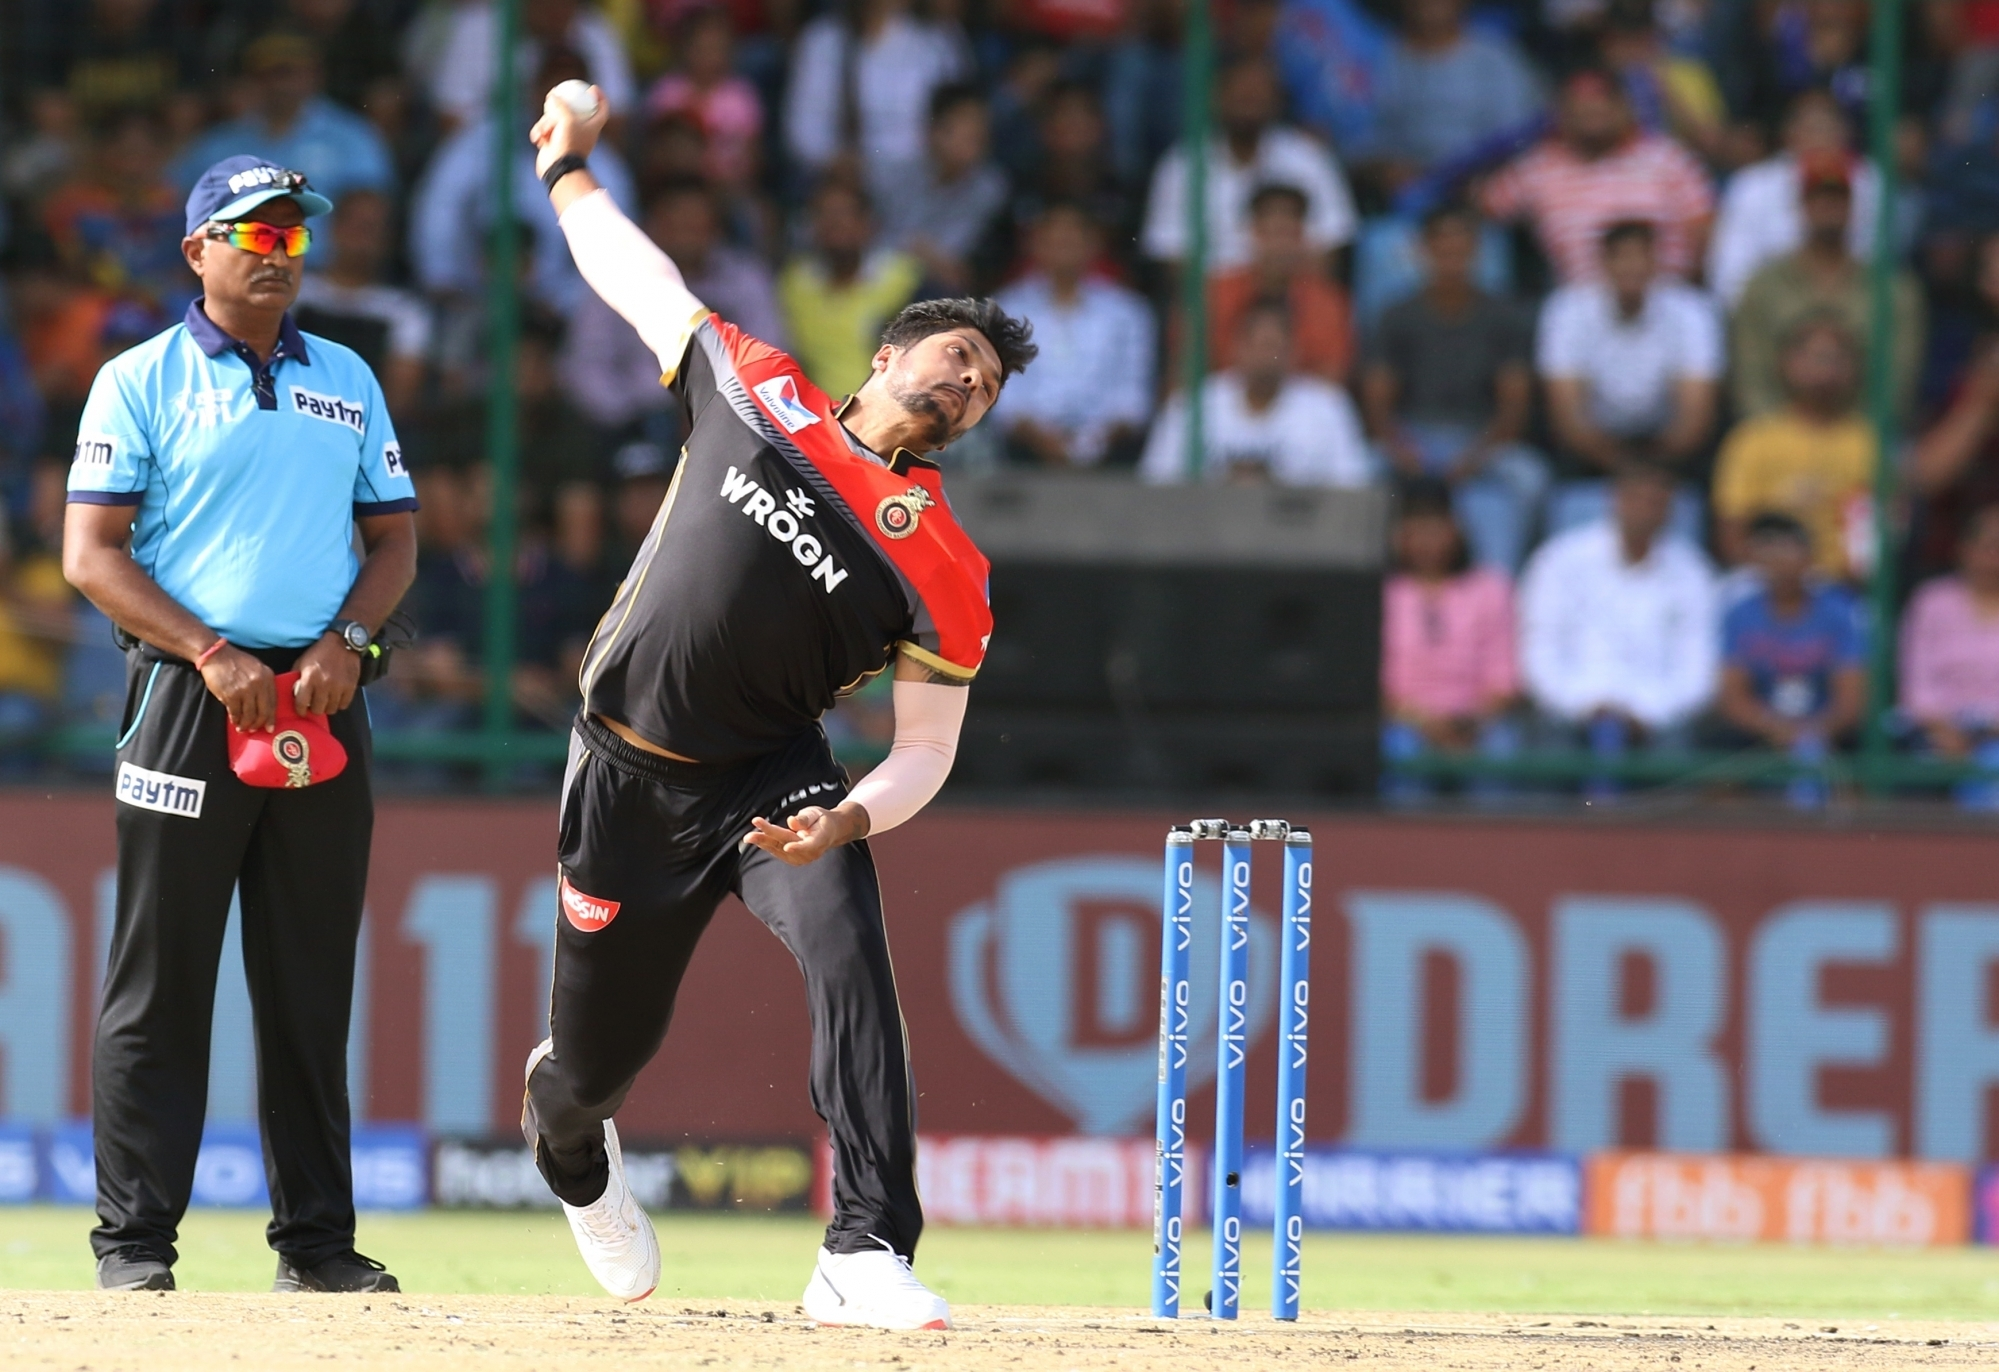 Umesh Yadav struggling to deliver in the IPL 2019 as well | IANS